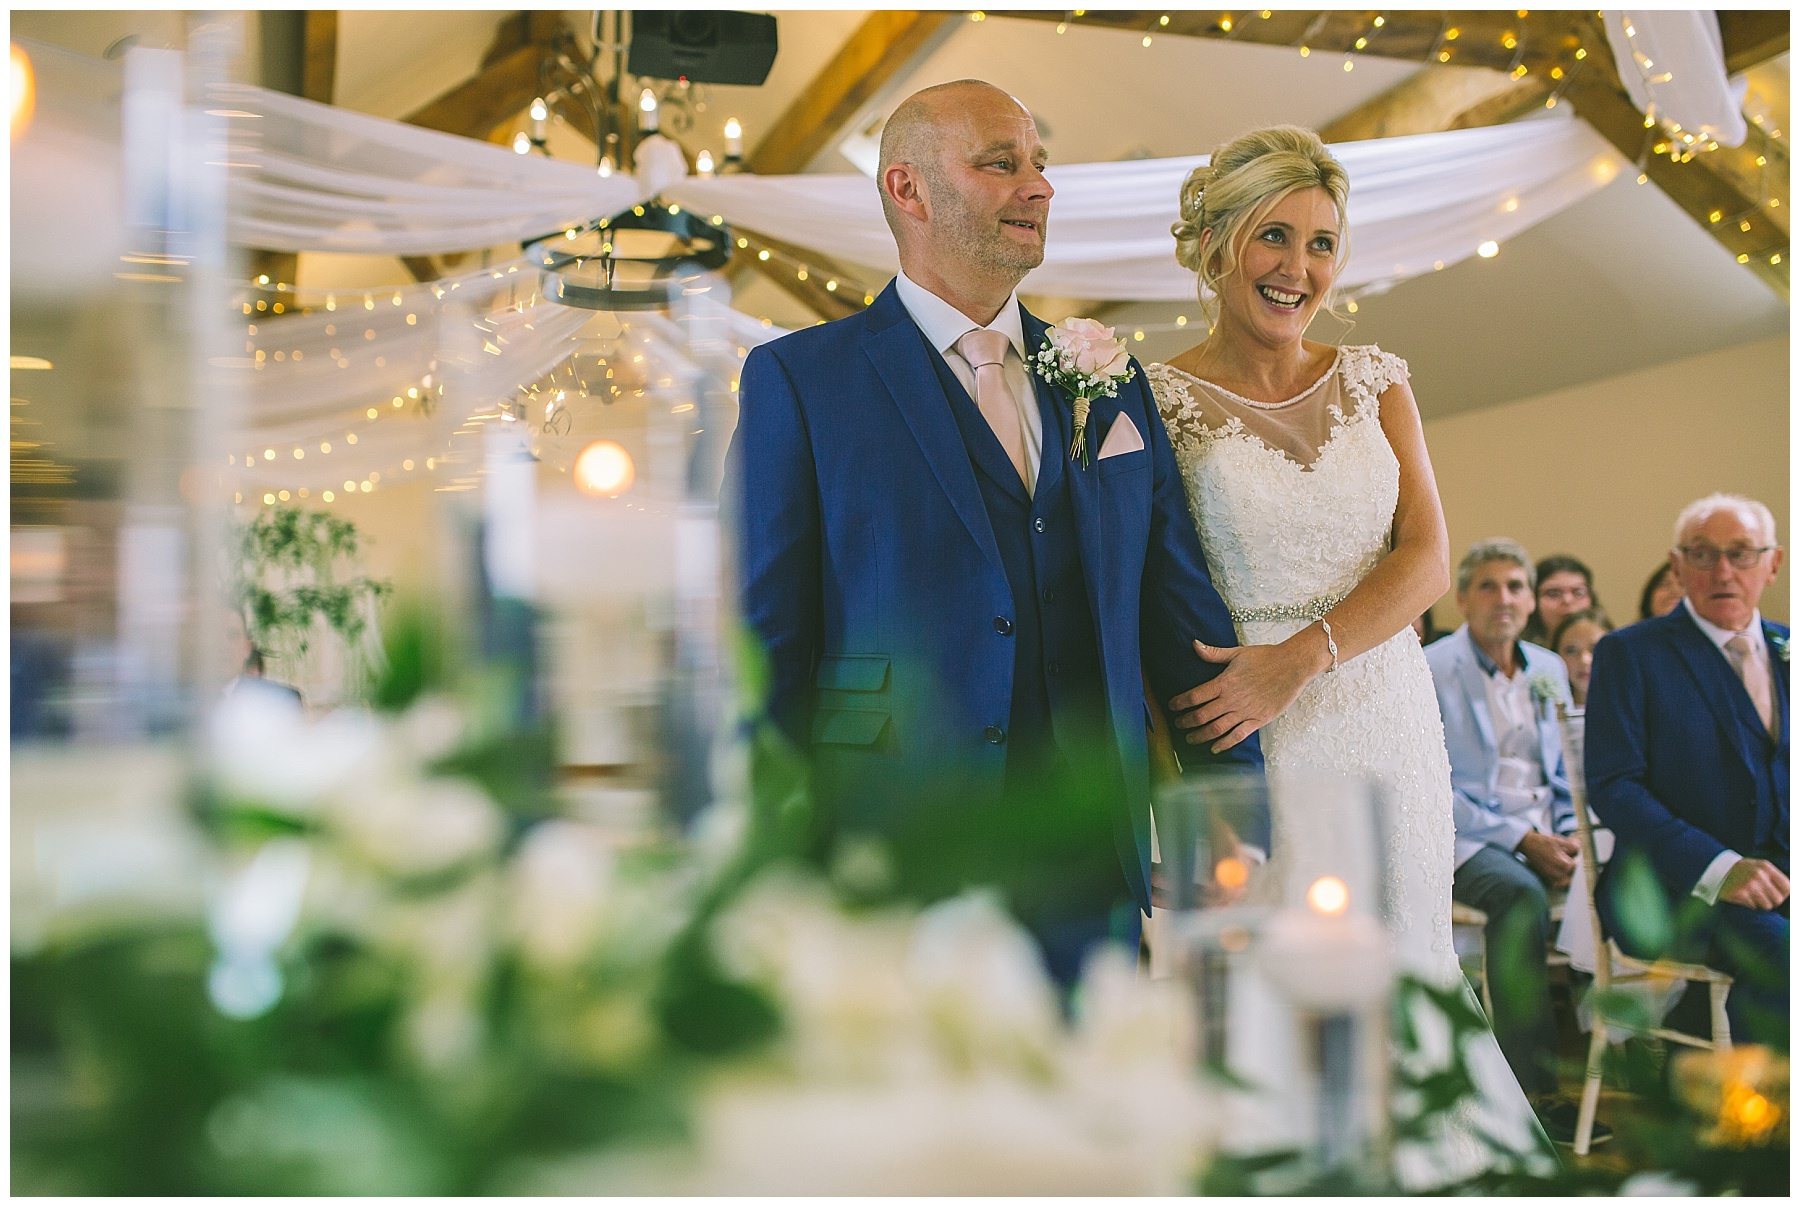 bride and groom in ceremony room at beeston manor